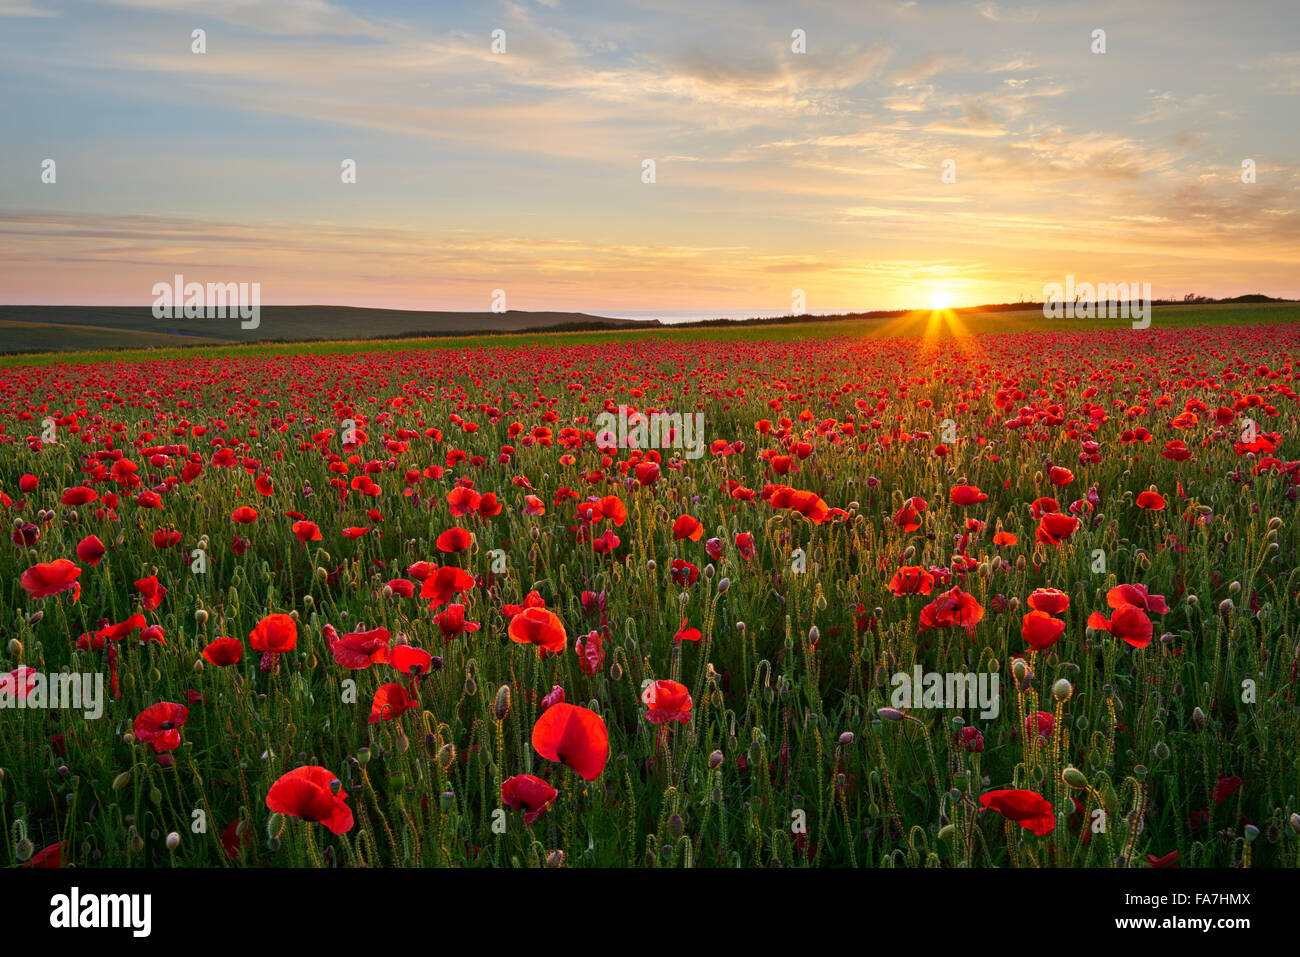 Poppy field in full bloom, Cornwall - Stock Image